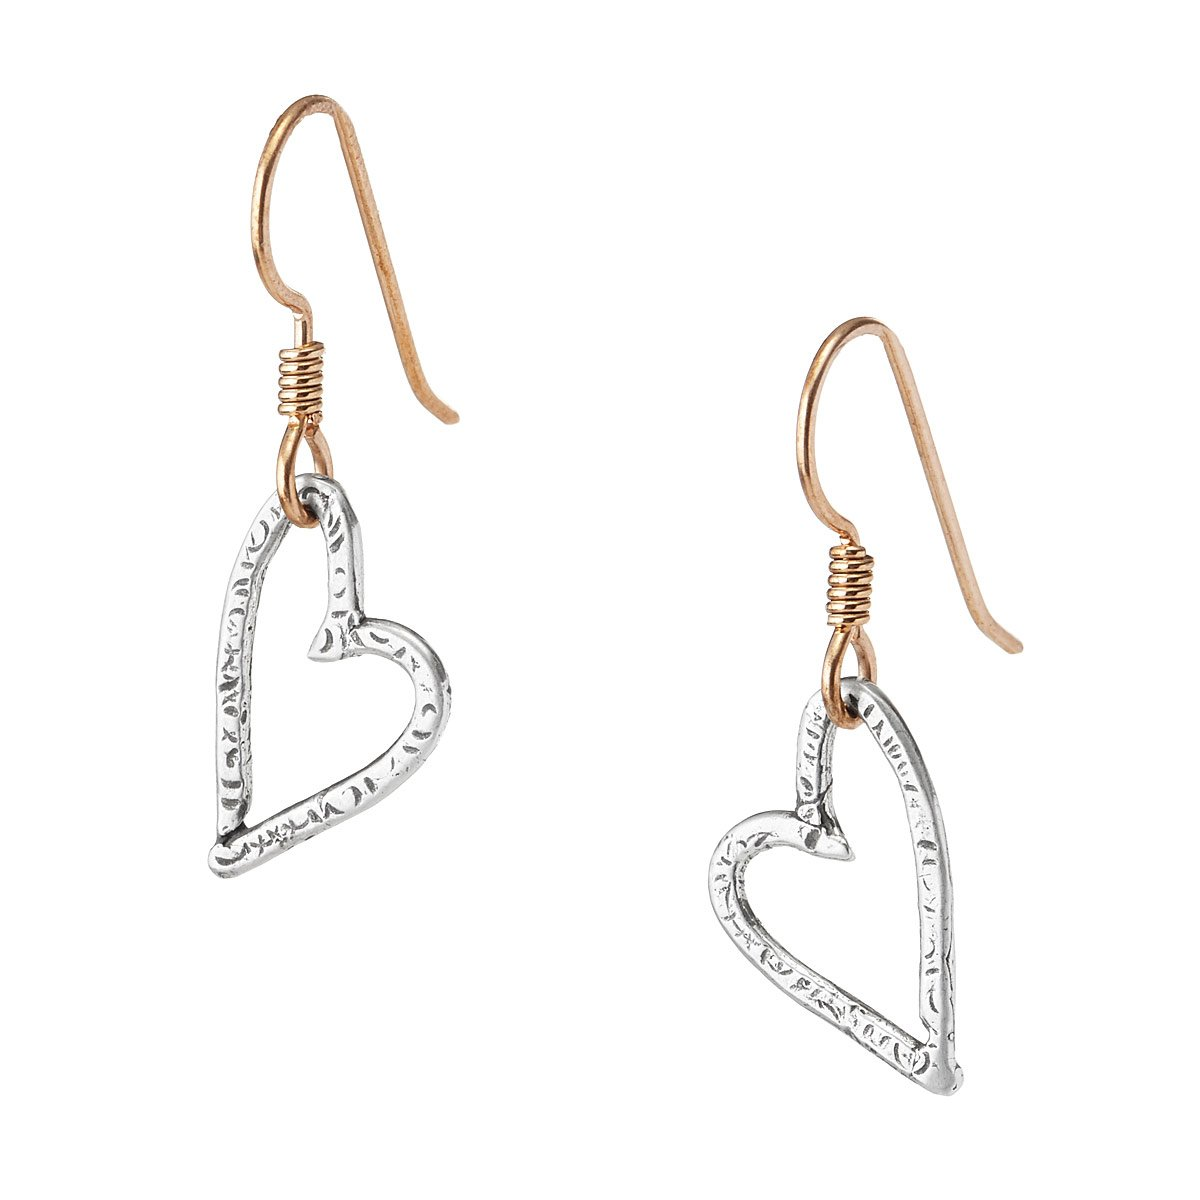 edizione ultima en small white heart earrings pendant